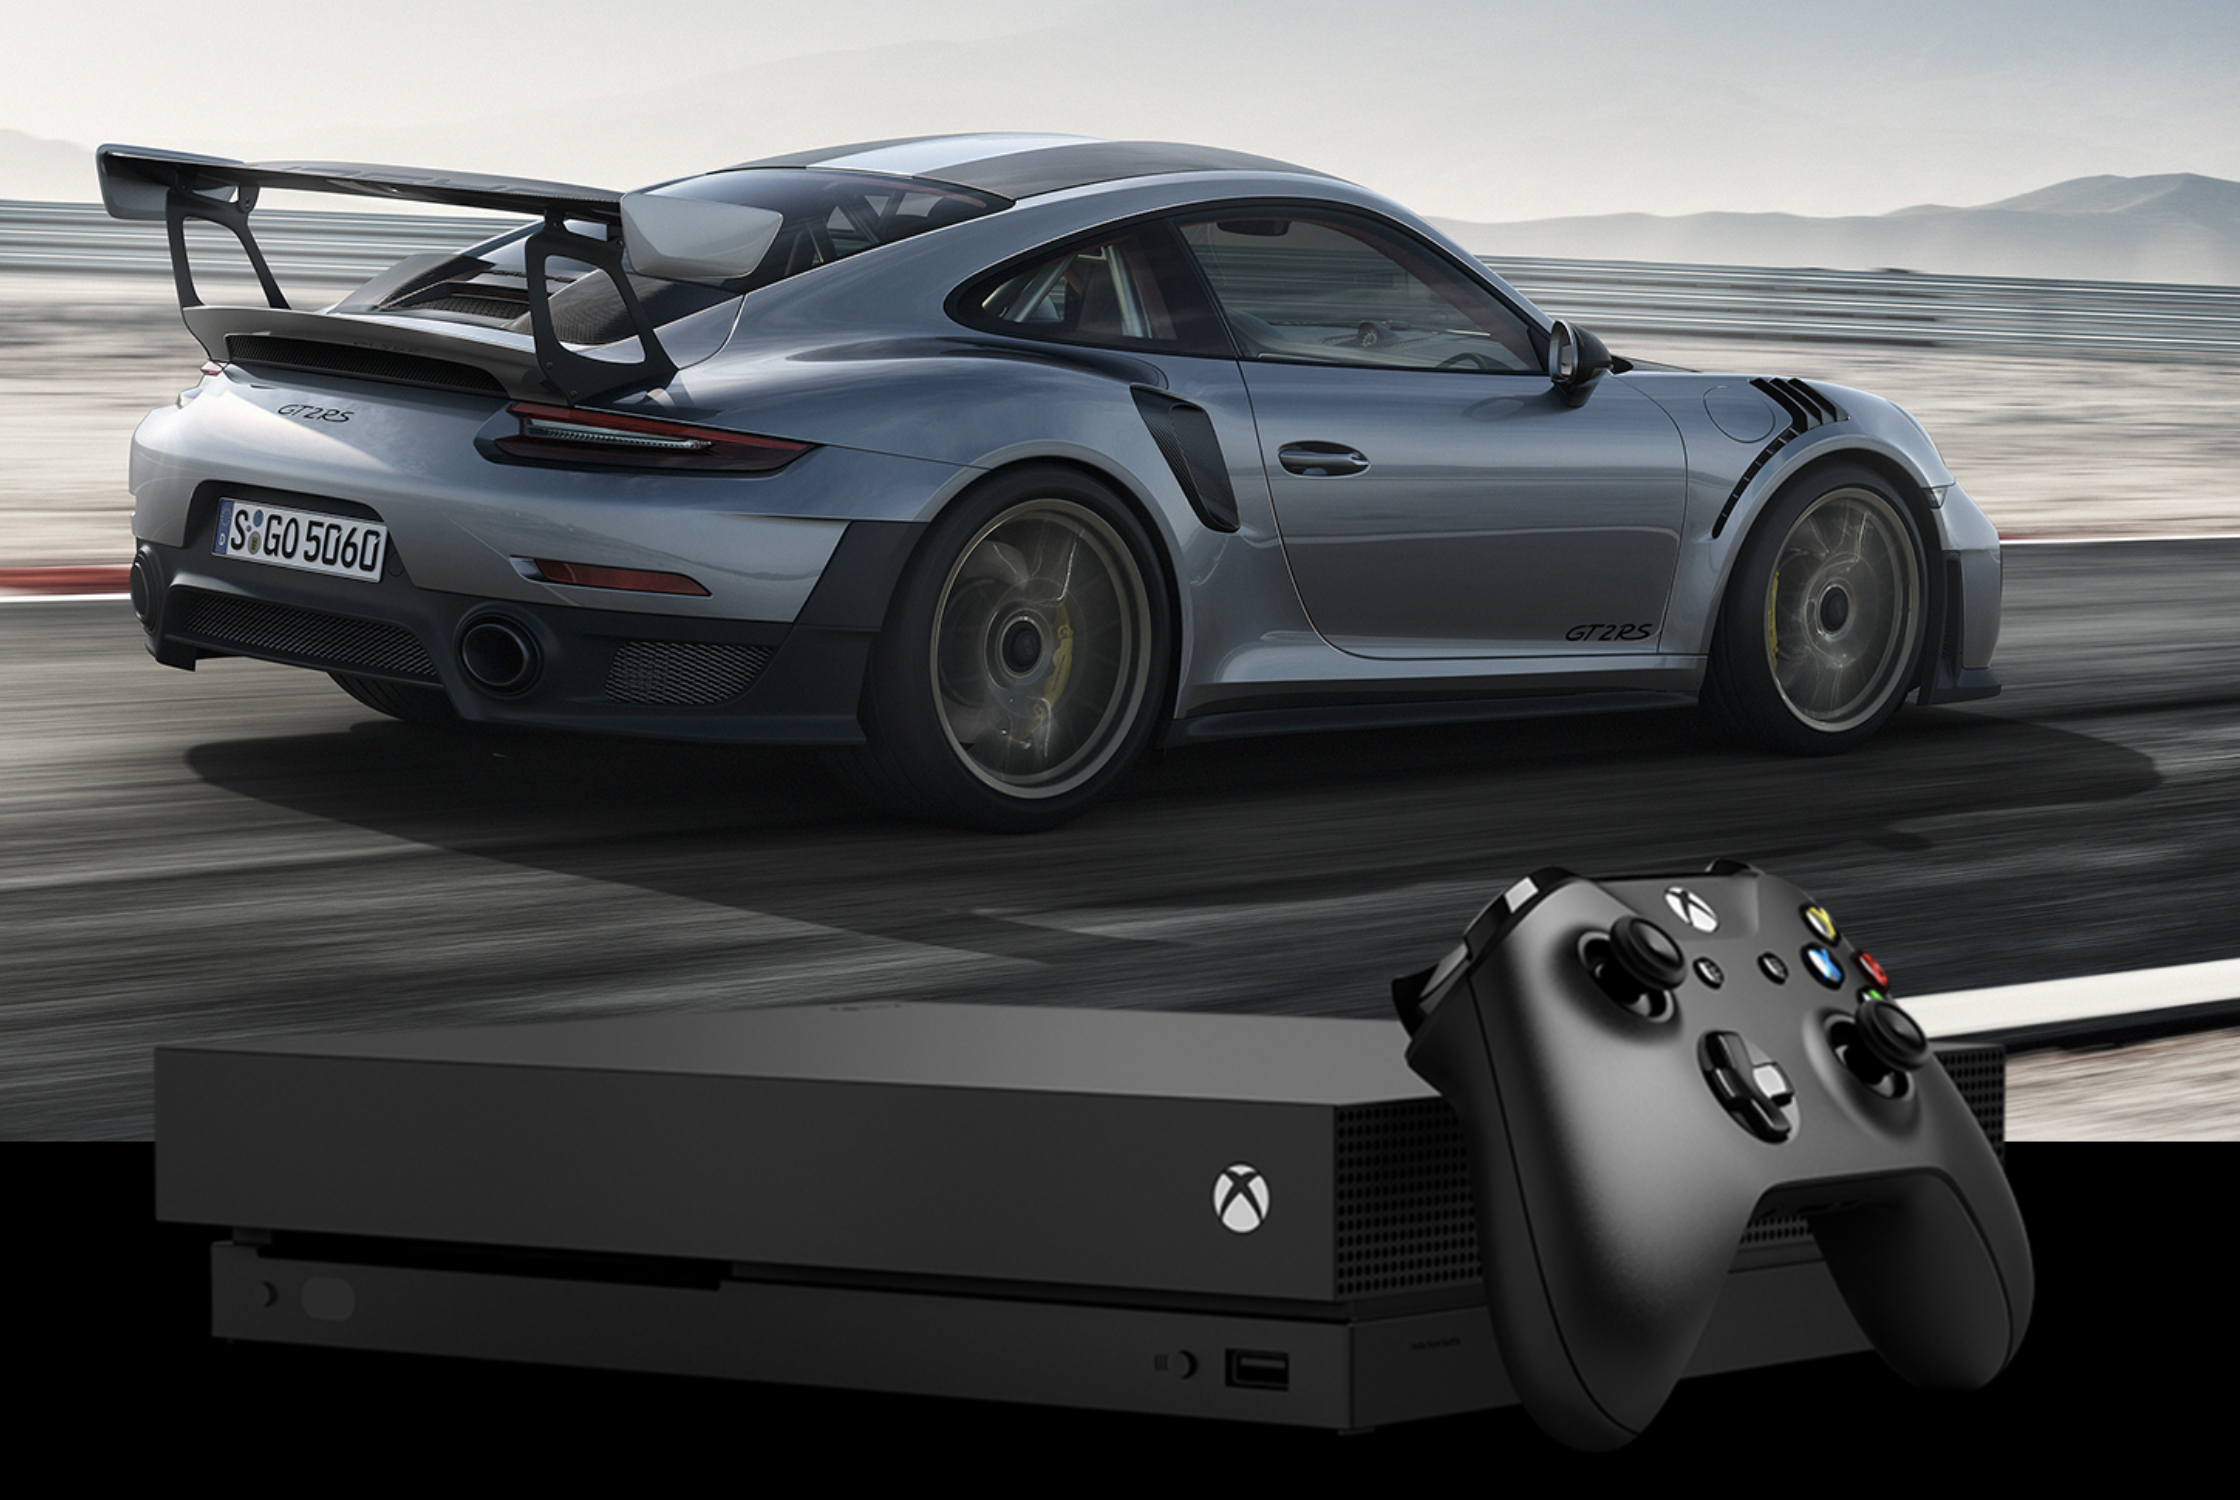 win a hot lap with mark webber in a porsche 911 gt2 rs by playing forza motorsport 7 eftm. Black Bedroom Furniture Sets. Home Design Ideas